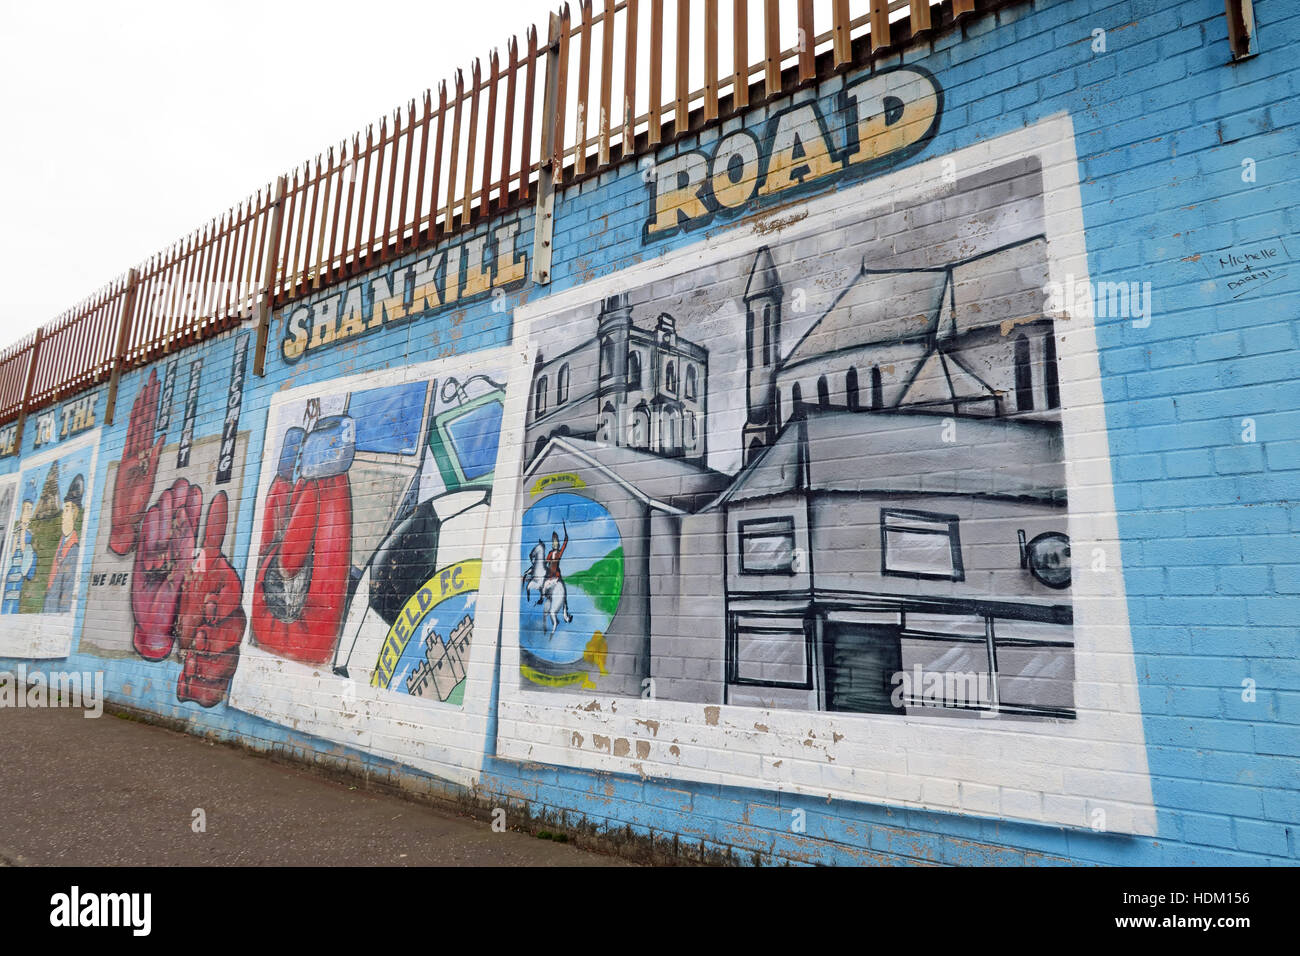 Northern Ireland,Peace,Wall,Cupar way,West Belfast,Belfast,Irish,art,artworks,artwork,Shankill Rd,Shankill,Rd,road,photo,polaroid,polaroids,walls,fence,fencing,barrier,Berlin wall,Belfast Protestant History,Irish history,GoTonySmith,@HotpixUK,Tony,Smith,UK,GB,Great,Britain,United,Kingdom,Irish,British,Ireland,problem,with,problem with,issue with,NI,Northern,Northern Ireland,Belfast,City,Centre,Art,Artists,the,troubles,The Troubles,Good Friday Agreement,Peace,honour,painting,wall,walls,tribute,Unionist,unionism,Protestant,Catholic,republican,Sinn Fein,community,Fight,Justice,West,Beal,feirste,martyrs,social,tour,tourism,tourists,urban,six,counties,6,backdrop,county,Antrim,UVF,DUP,British,GB,Empire,Buy Pictures of,Buy Images Of,Images of,Stock Images,Tony Smith,United Kingdom,Great Britain,British Isles,Belfast protestant community,Peoples army,Belfast catholic community,Irelands Berlin wall